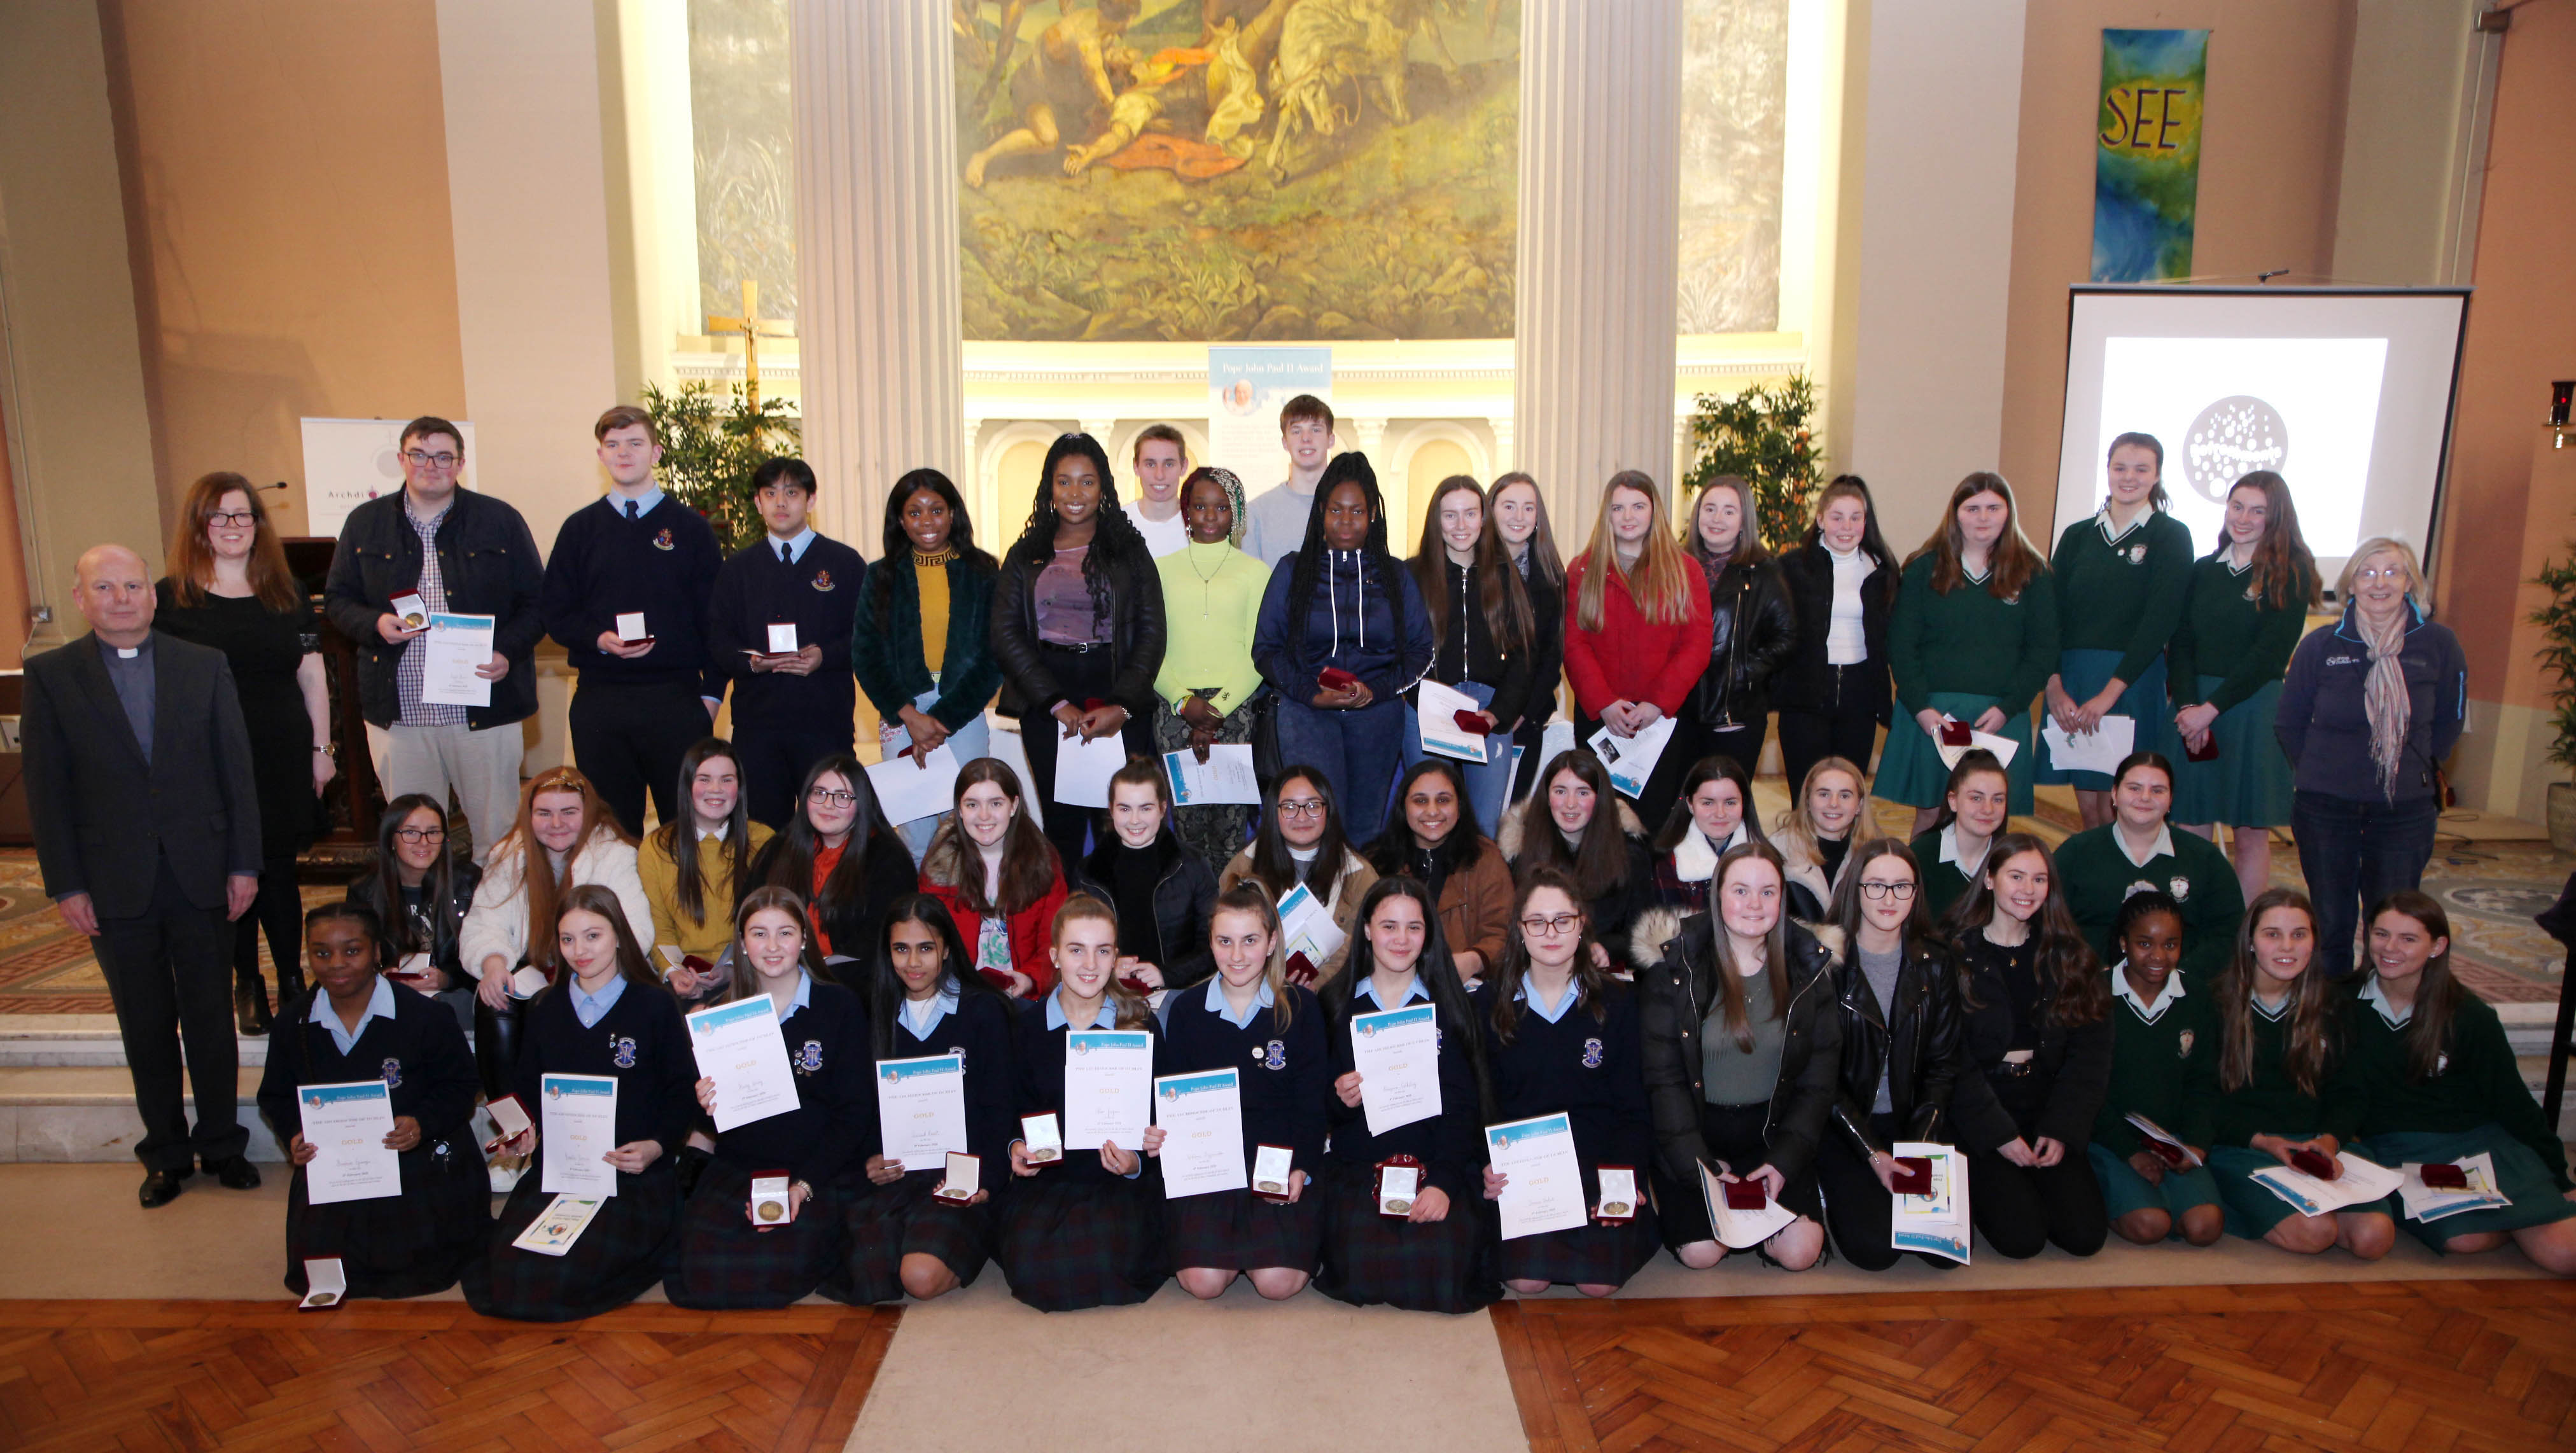 JOHN PAUL 2nd AWARDS. 4.2.2020On Tuesday evening the Archdiocese of Dublin held the annual St John Paul II awards in St Paul's Church Arran Quay in Dublin. The awards are dedicated to the memory of St. John Paul II who showed a great love and confidence in young people. Christian leadership and service in the community are at the heart of what the awards are about. Pic shows the award winners on Tuesday evening in St Paul's Church Arran Quay in Dublin. Pic John Mc Elroy. NO REPRO FEE.